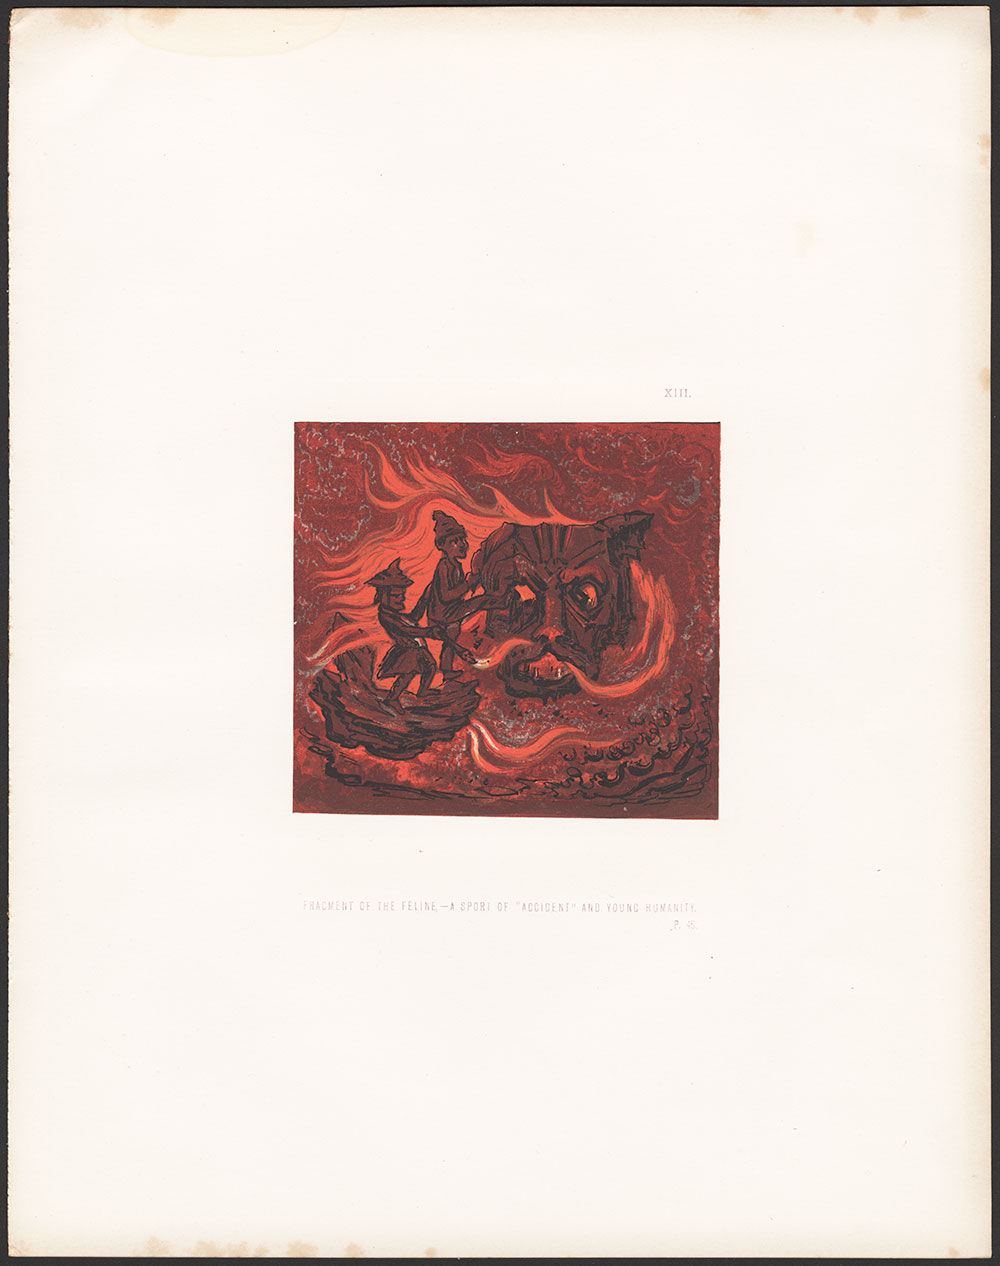 L. M. Budgen. Live Coals: or, Faces From the Fire. London: L. Reeve & Co., 1867.